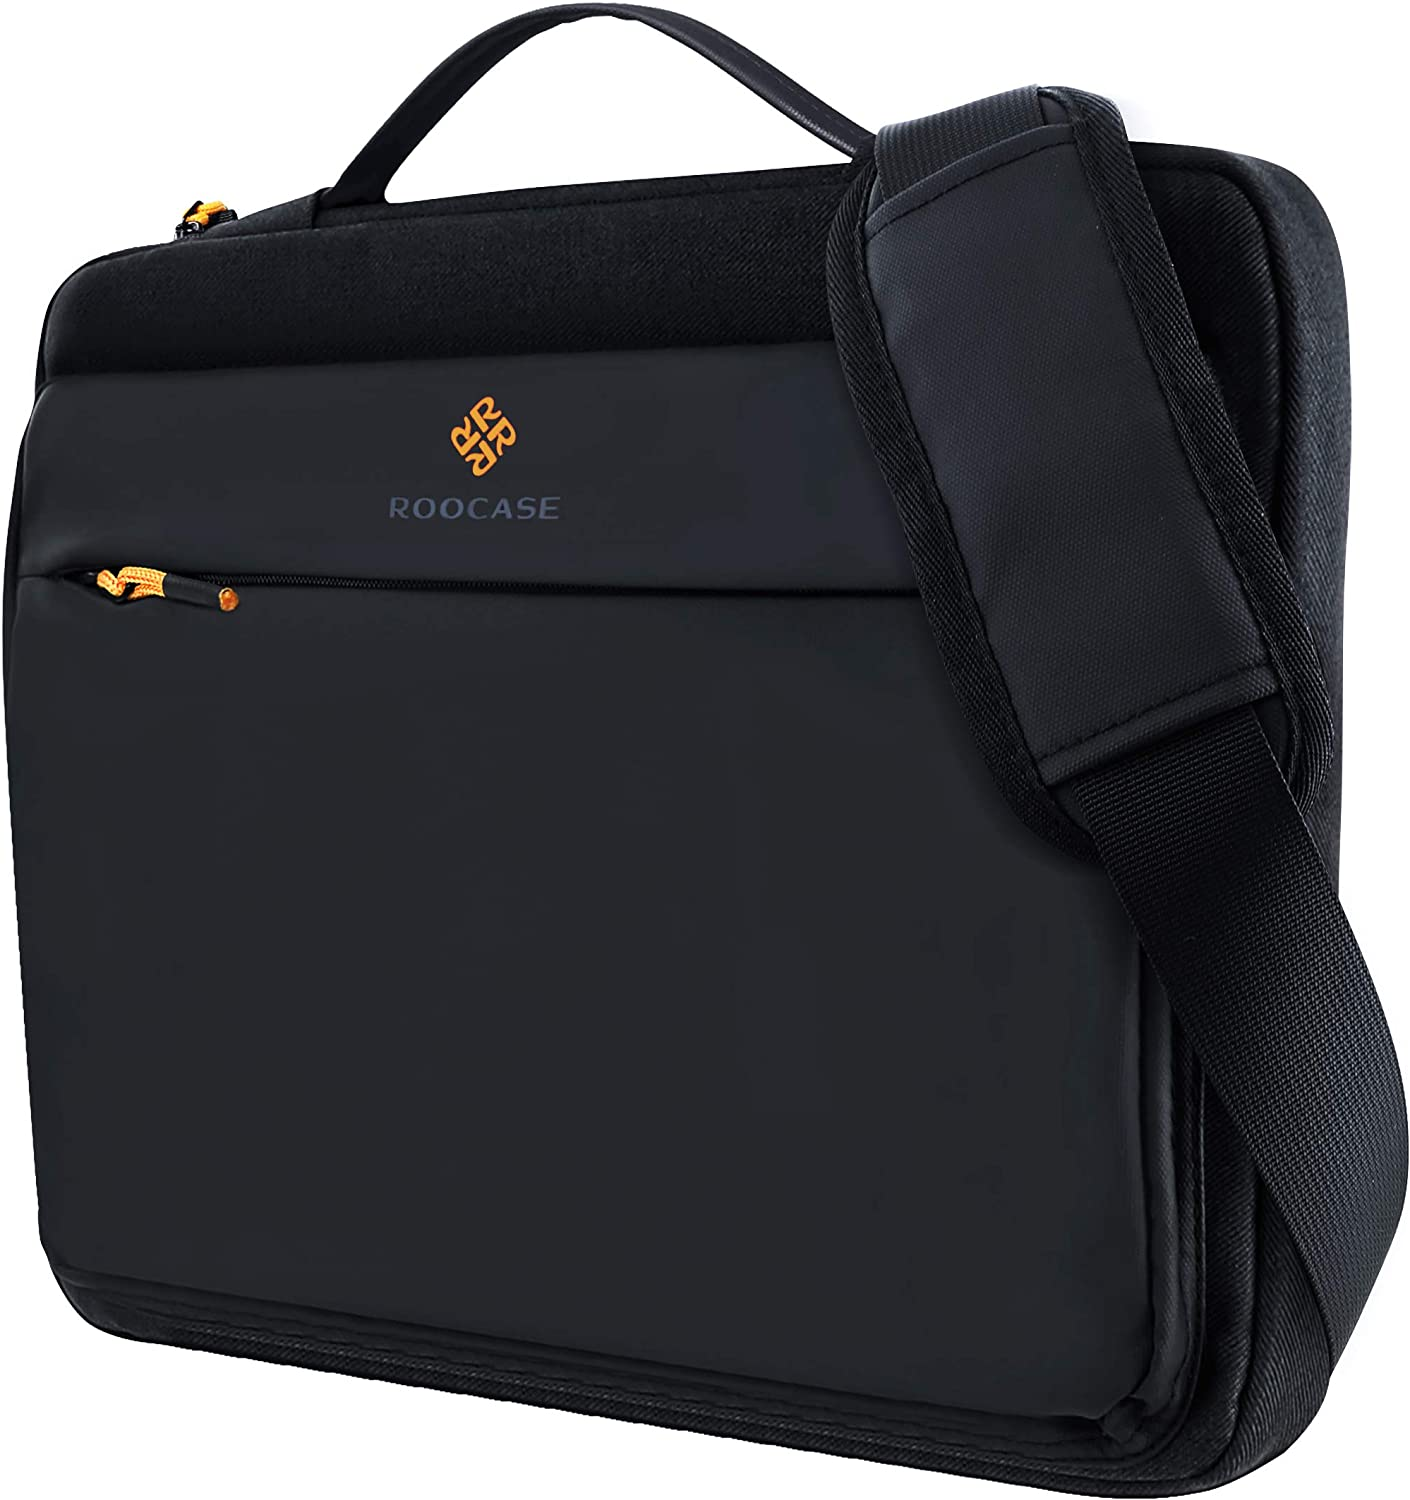 rooCASE Lancaster Laptop Shoulder Bag - MacBook Carrying Case Messenger Bag with Strap Fits 15.6 inch Laptop and Tablet - Business/Travel/School Bags